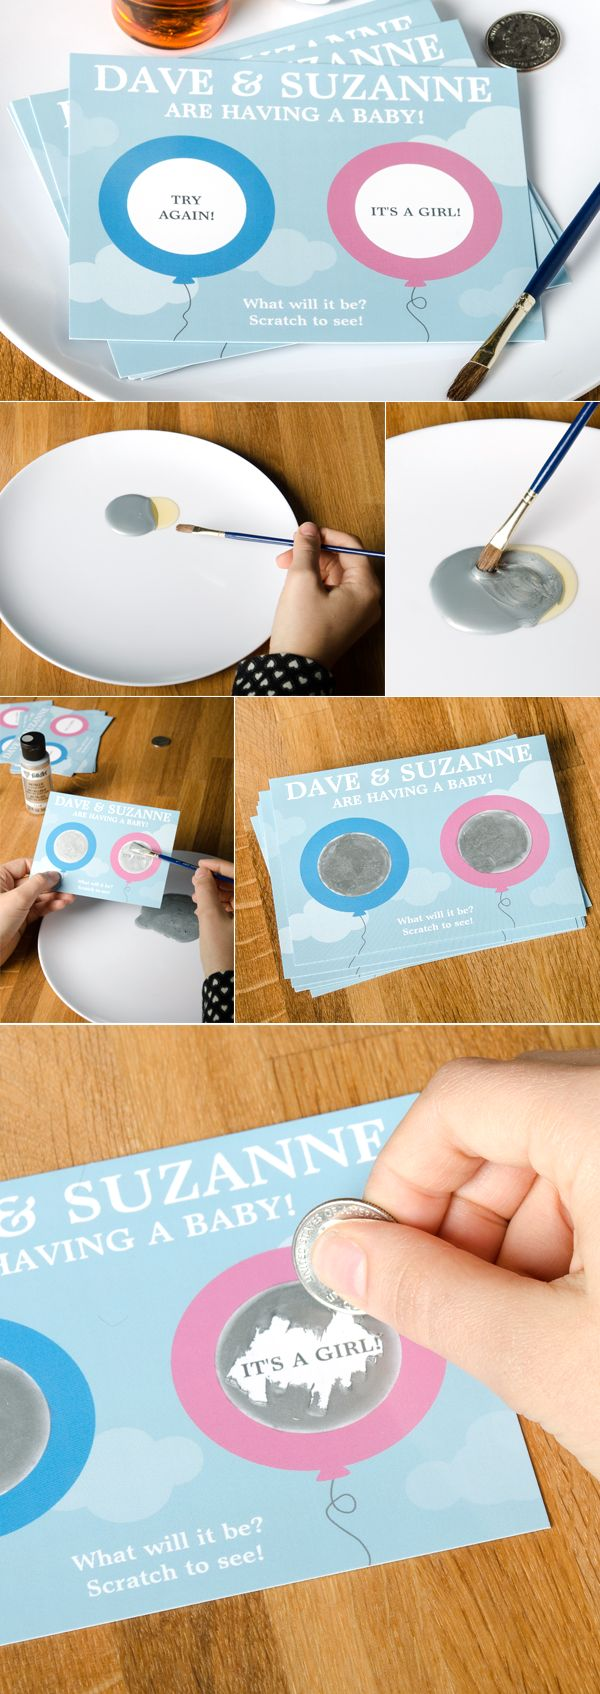 Baby shower gender reveal diy card. Great idea to adapt for other celebrations....